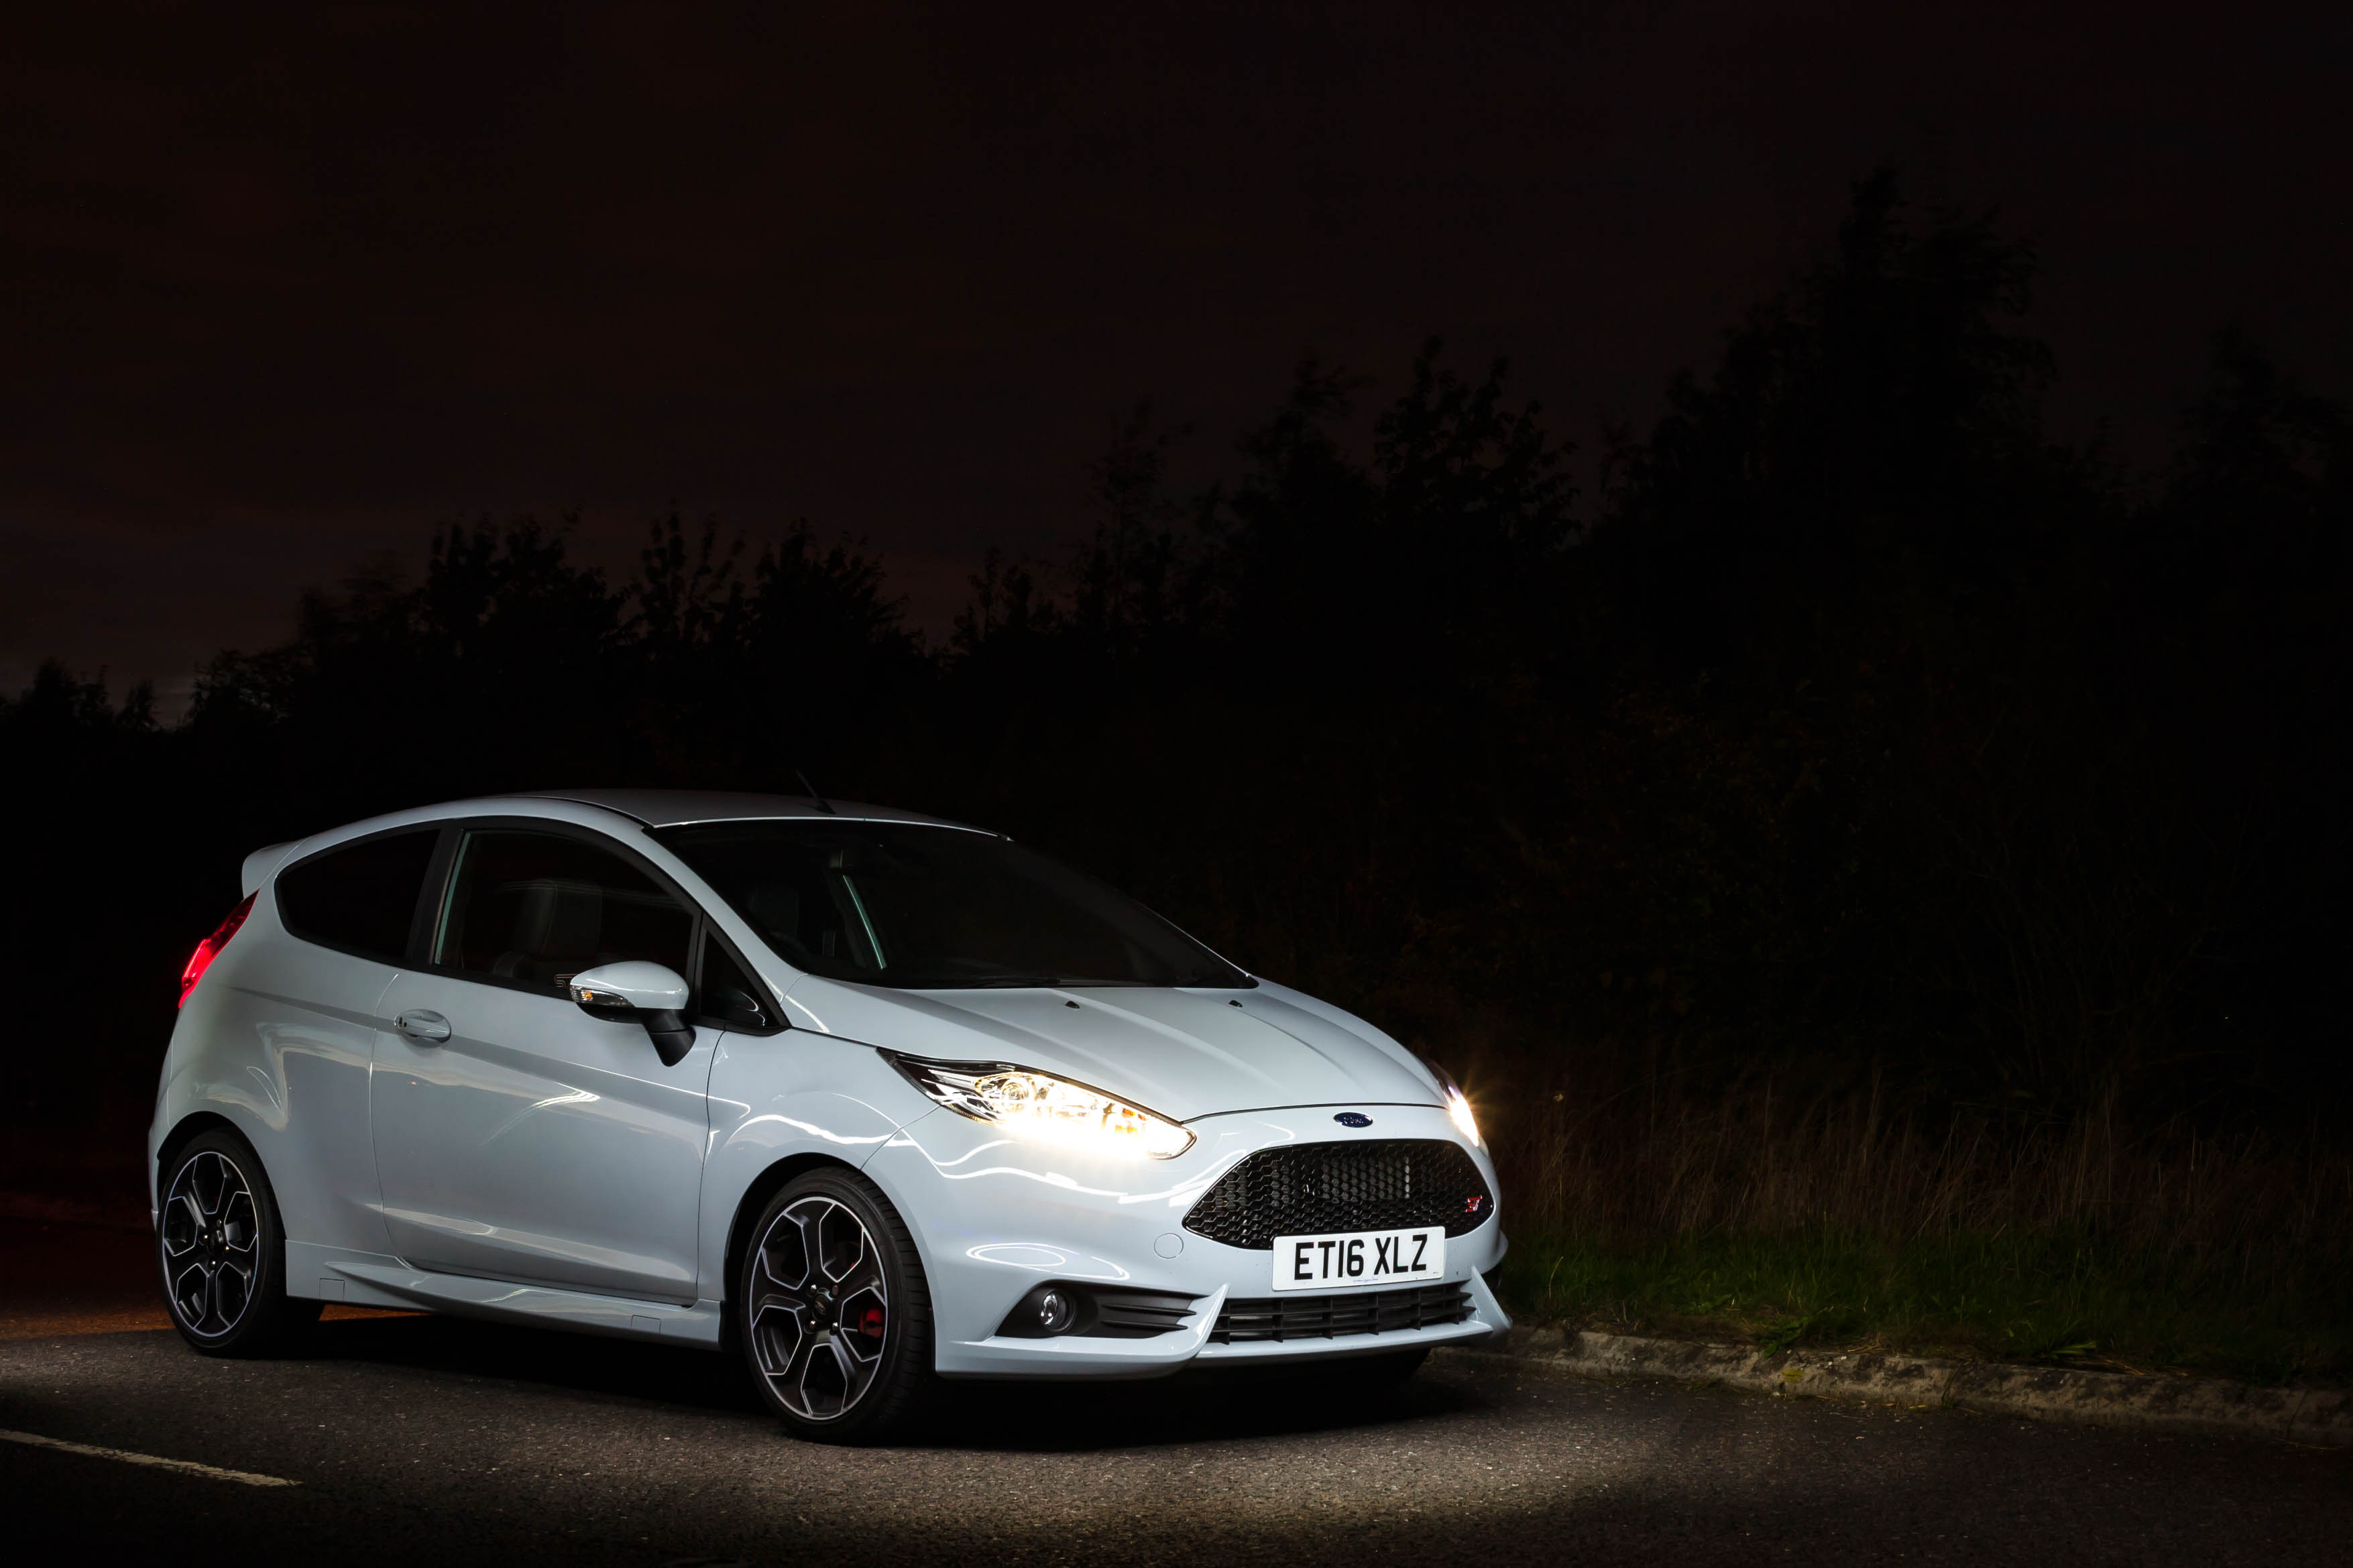 Ford Fiesta St 2016 >> 2016 Ford Fiesta ST200 Gallery